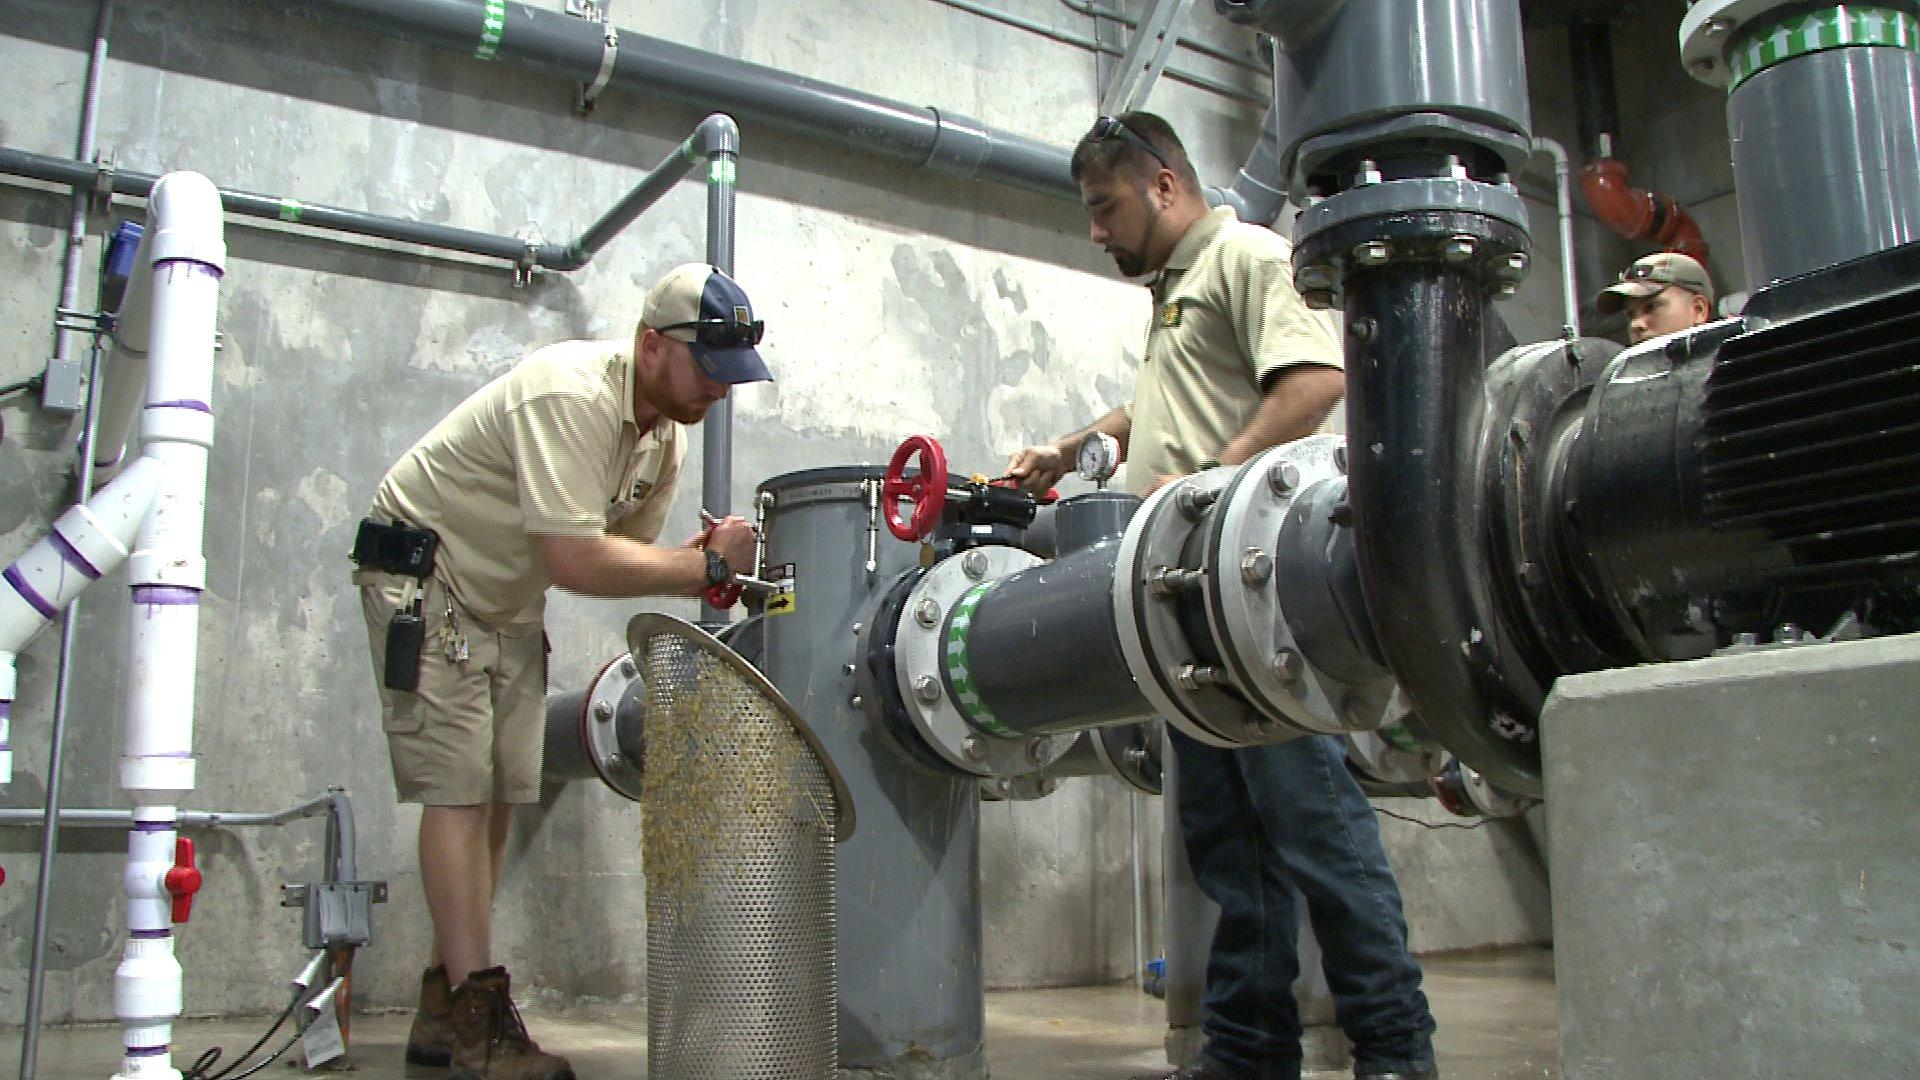 Dallas Zoo Workers Save the Day During Water Main Leak